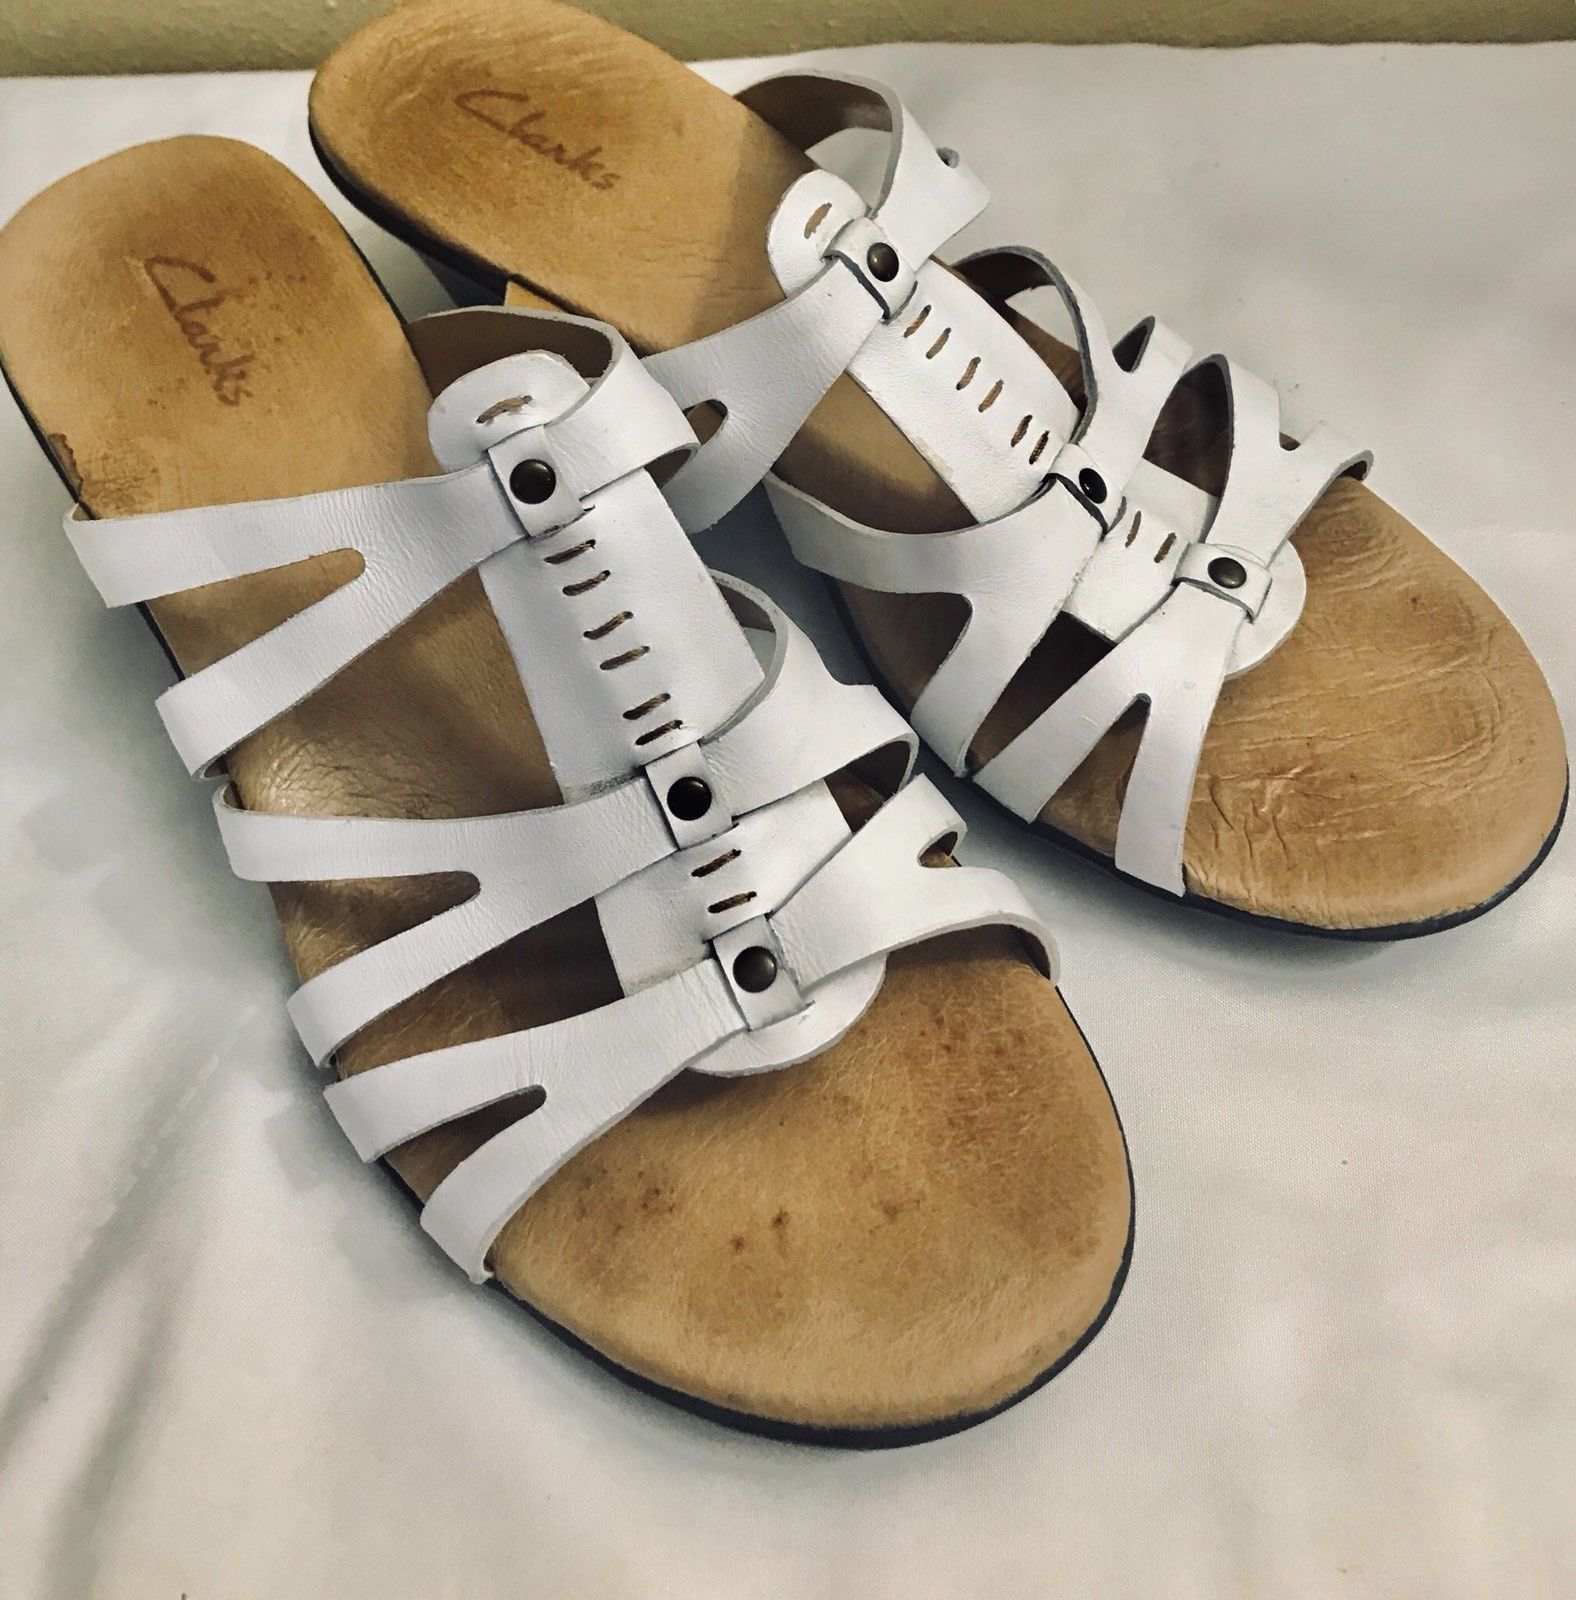 e54b73922d1e S l1600. S l1600. Previous. Clarks White Strappy Leather Slip On Heel Women s  Sandals Size ...